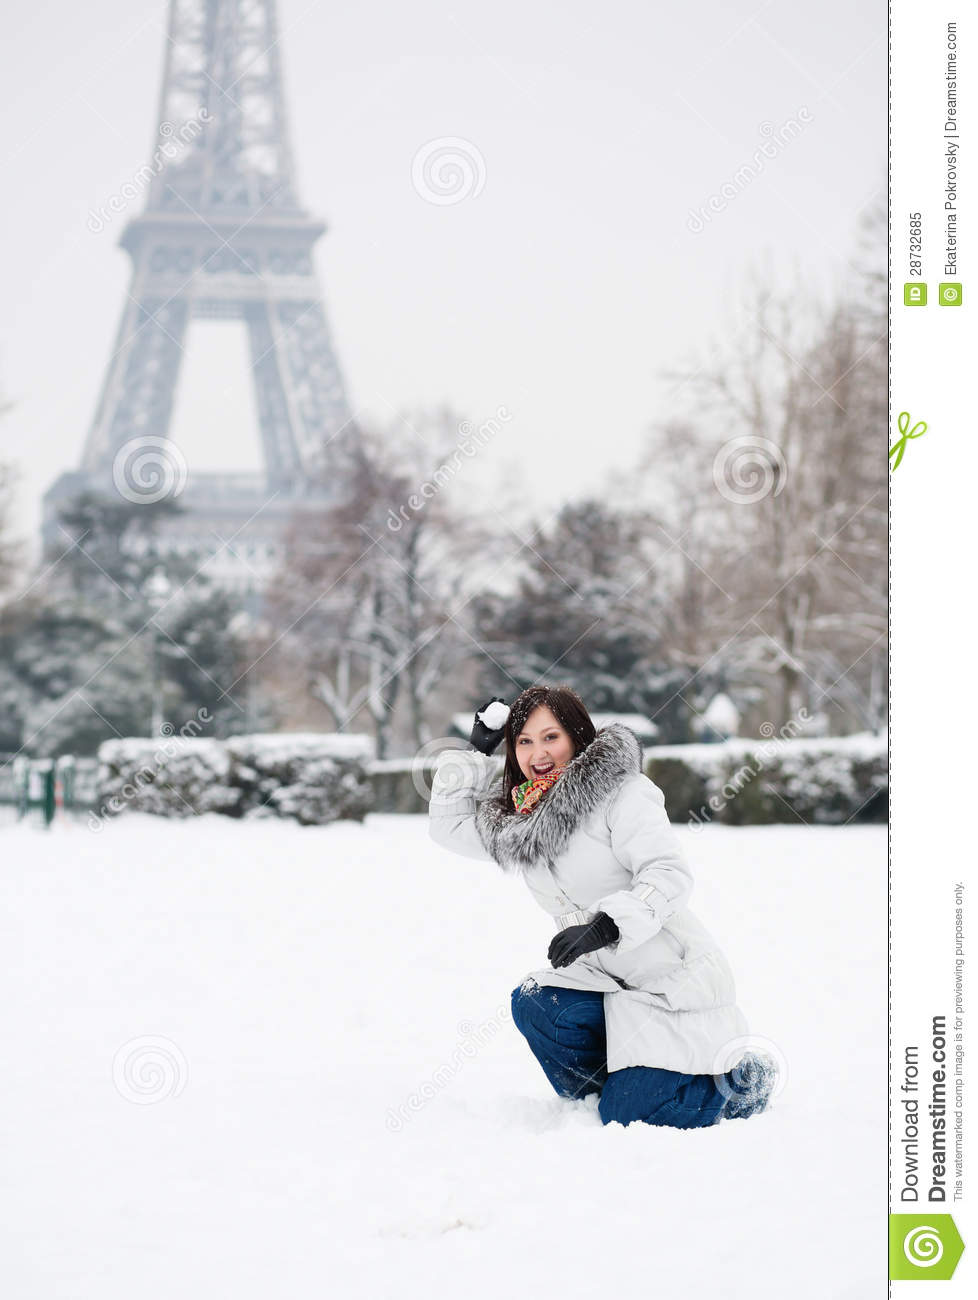 Girl playing snowballs near the eiffel tower in paris royalty free